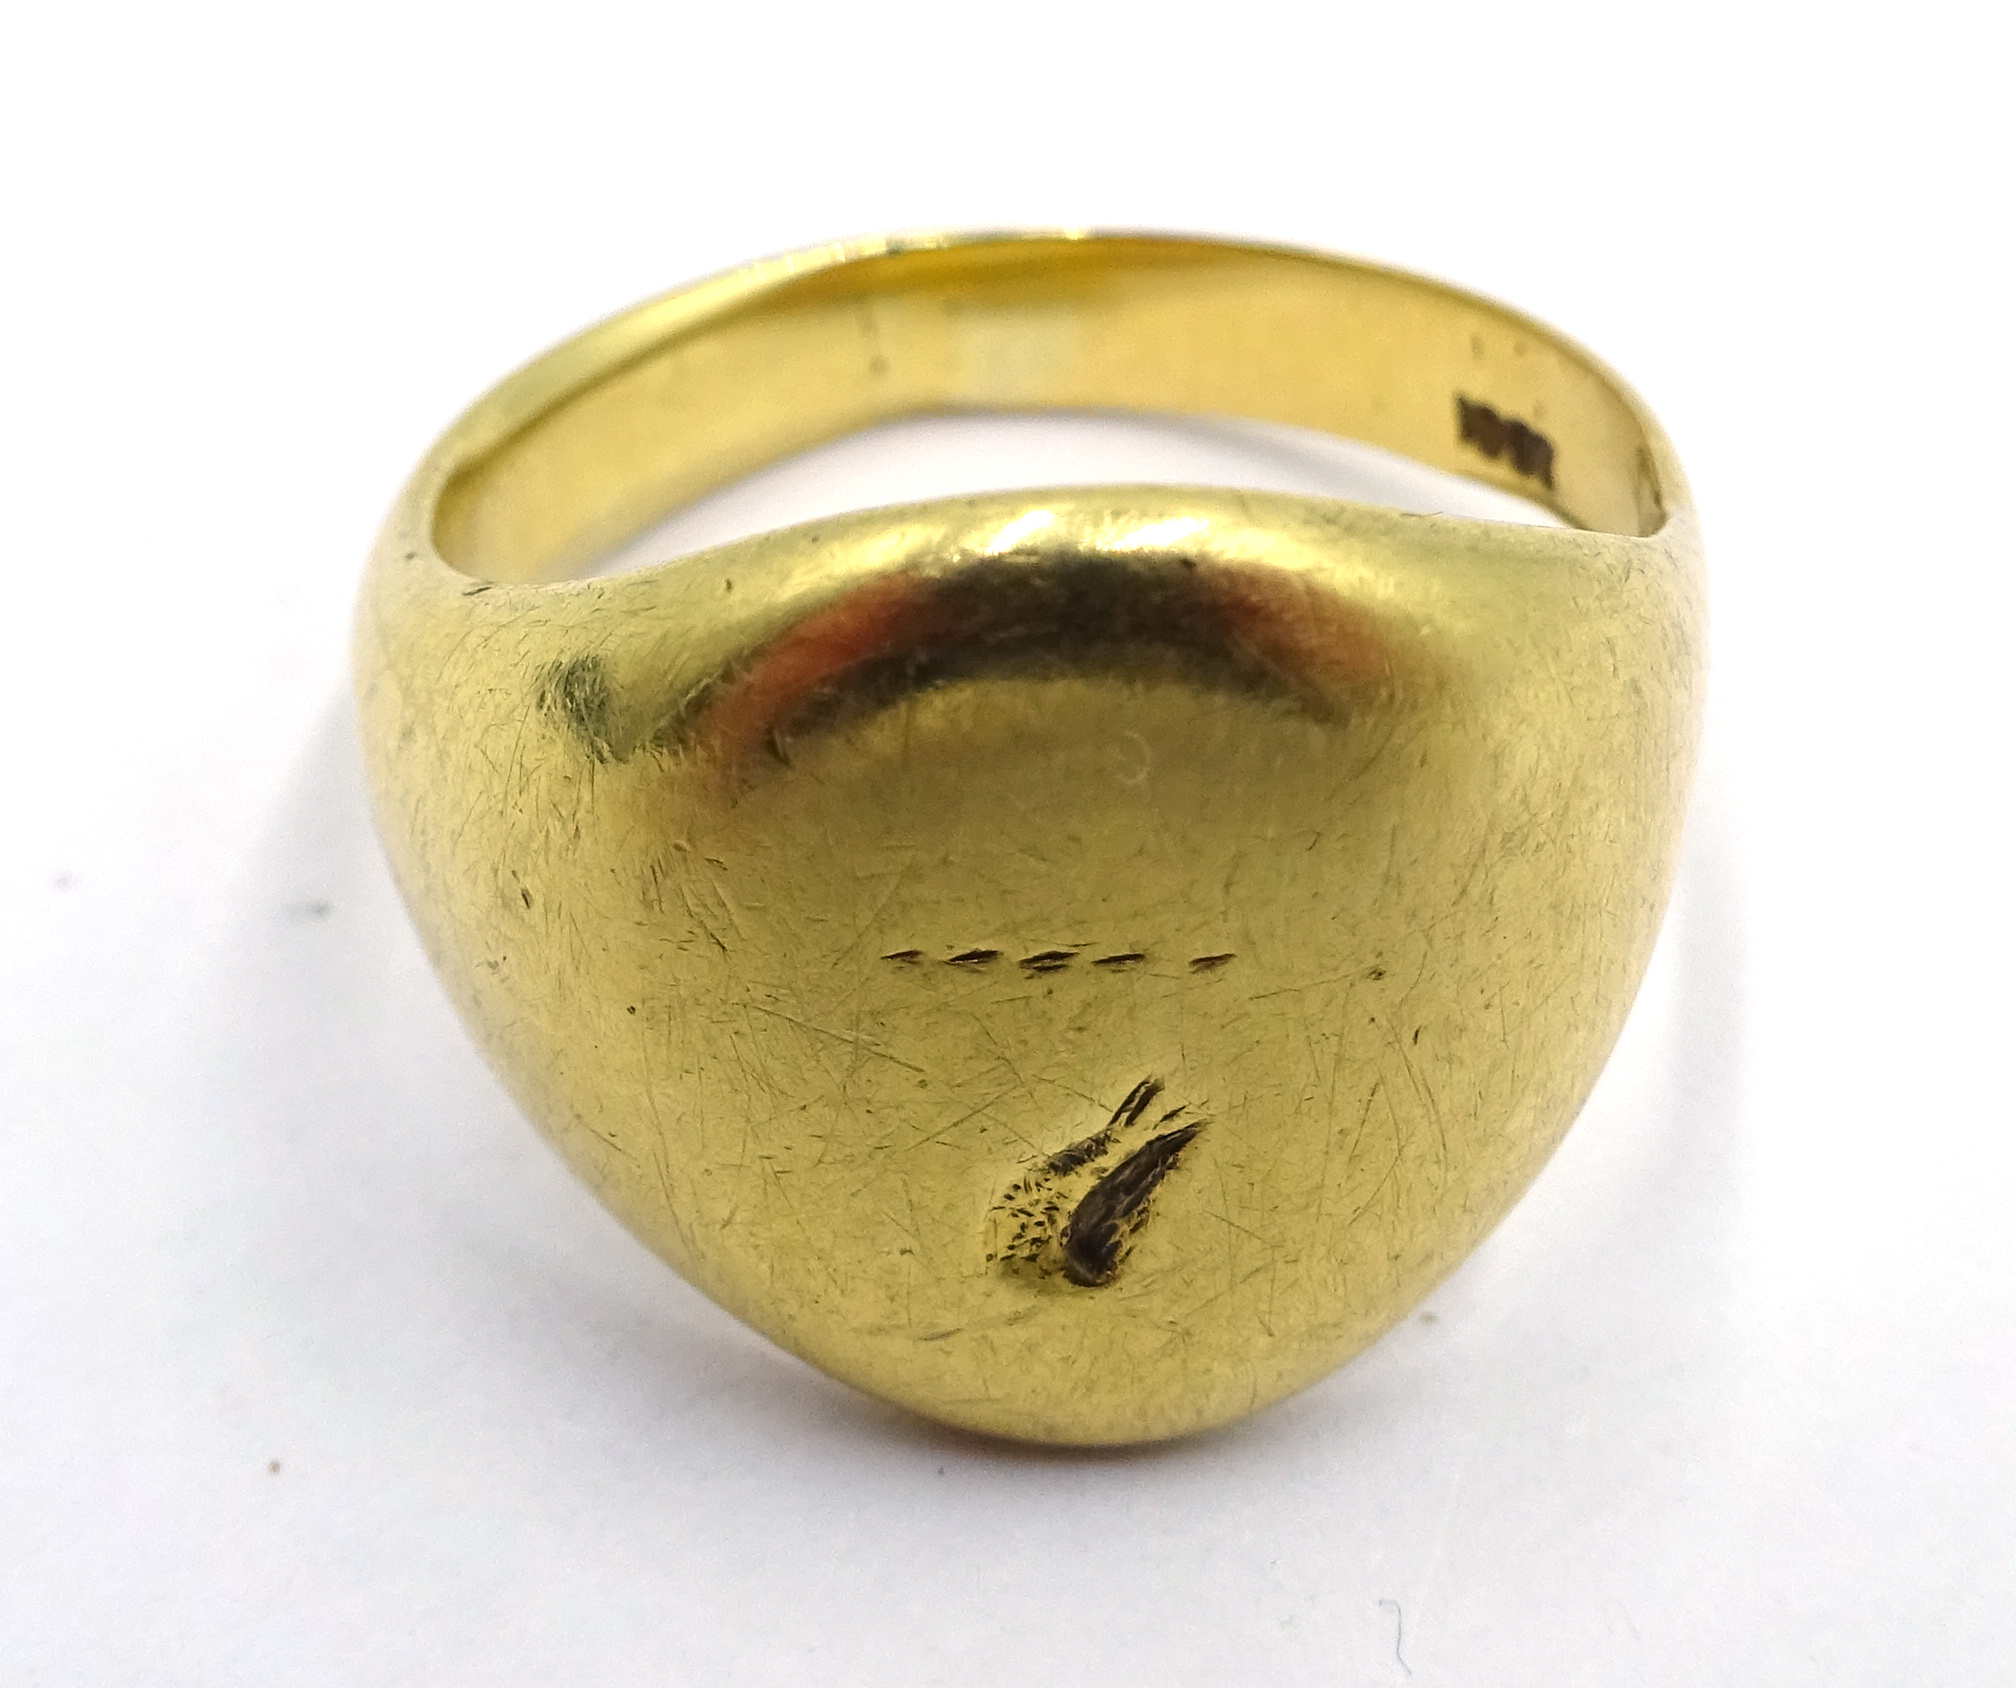 Lot 1059 - Gold signet ring stamped 18ct, approx 9.